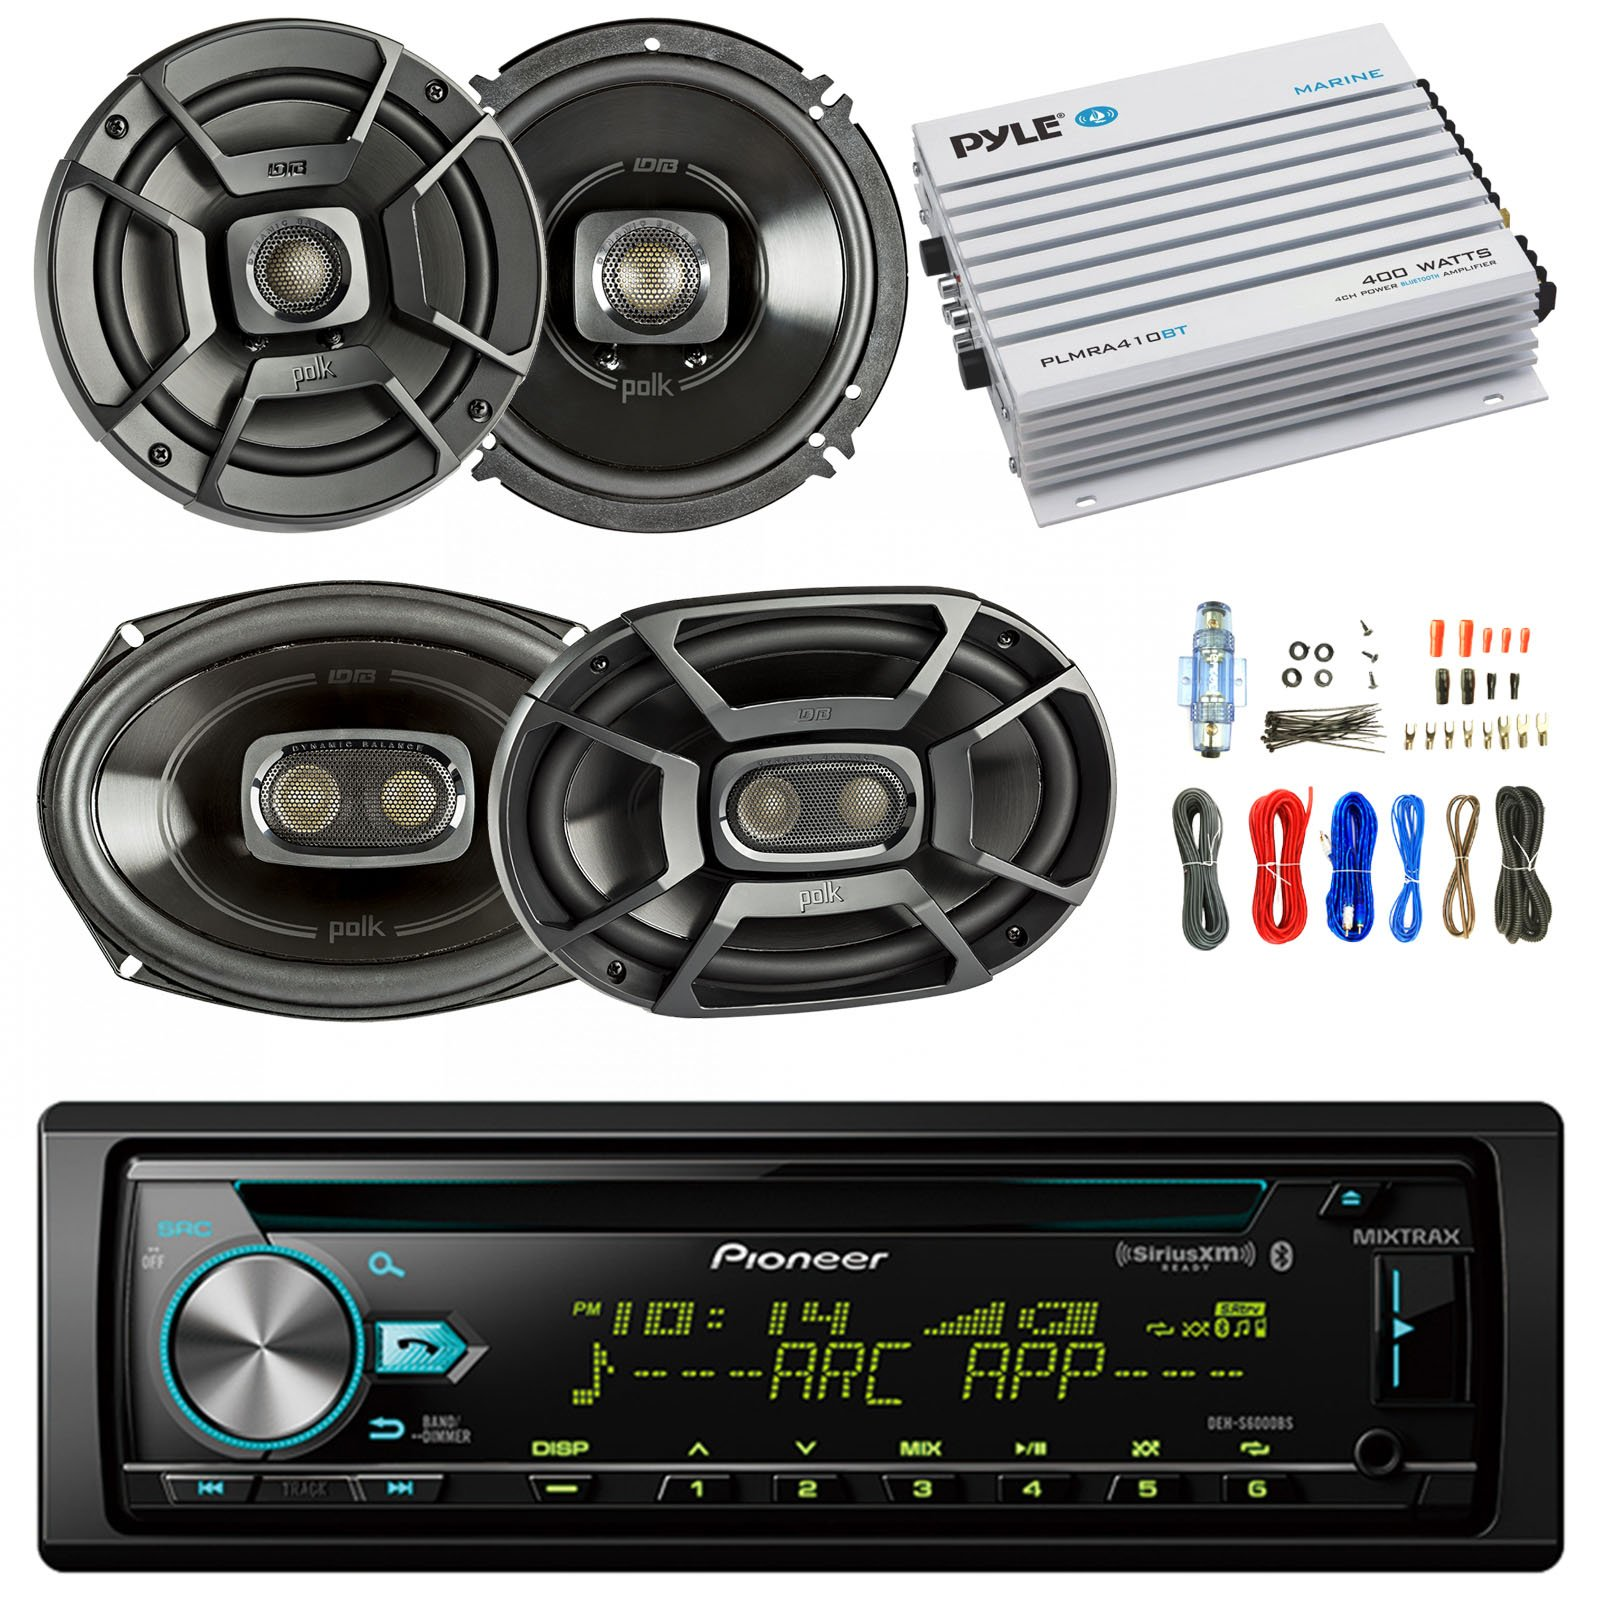 Pioneer DEH-S6000BS Car Bluetooth Radio USB AUX CD Player Receiver - Bundle Combo With 2x Alpine 6.5'' 80W 2-Way Coaxial Car Speakers + 2x 6x9 Inch 280W Black Speaker + 4-Channel Amplifier + Amp Kit